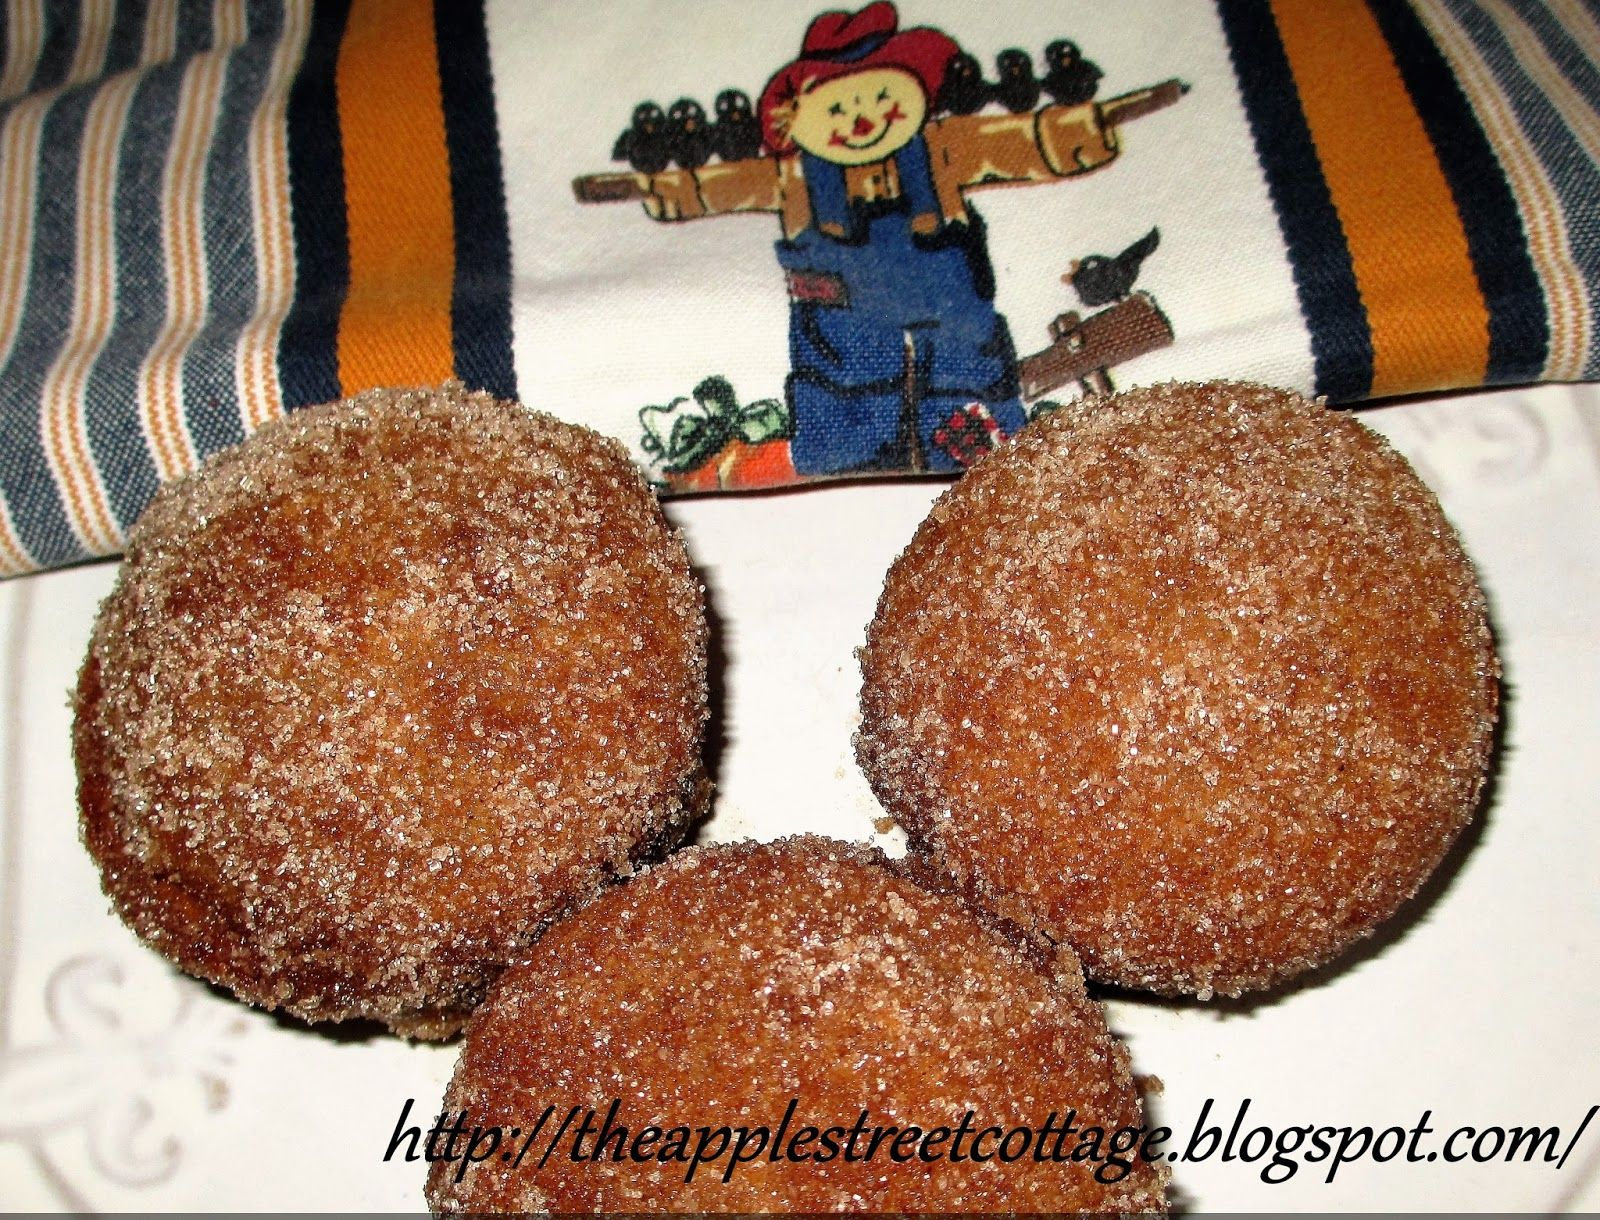 I want to share this recipe with you before all the apple cider disappears. I made them a few weeks ago and they were a huge hit. I can't ta...